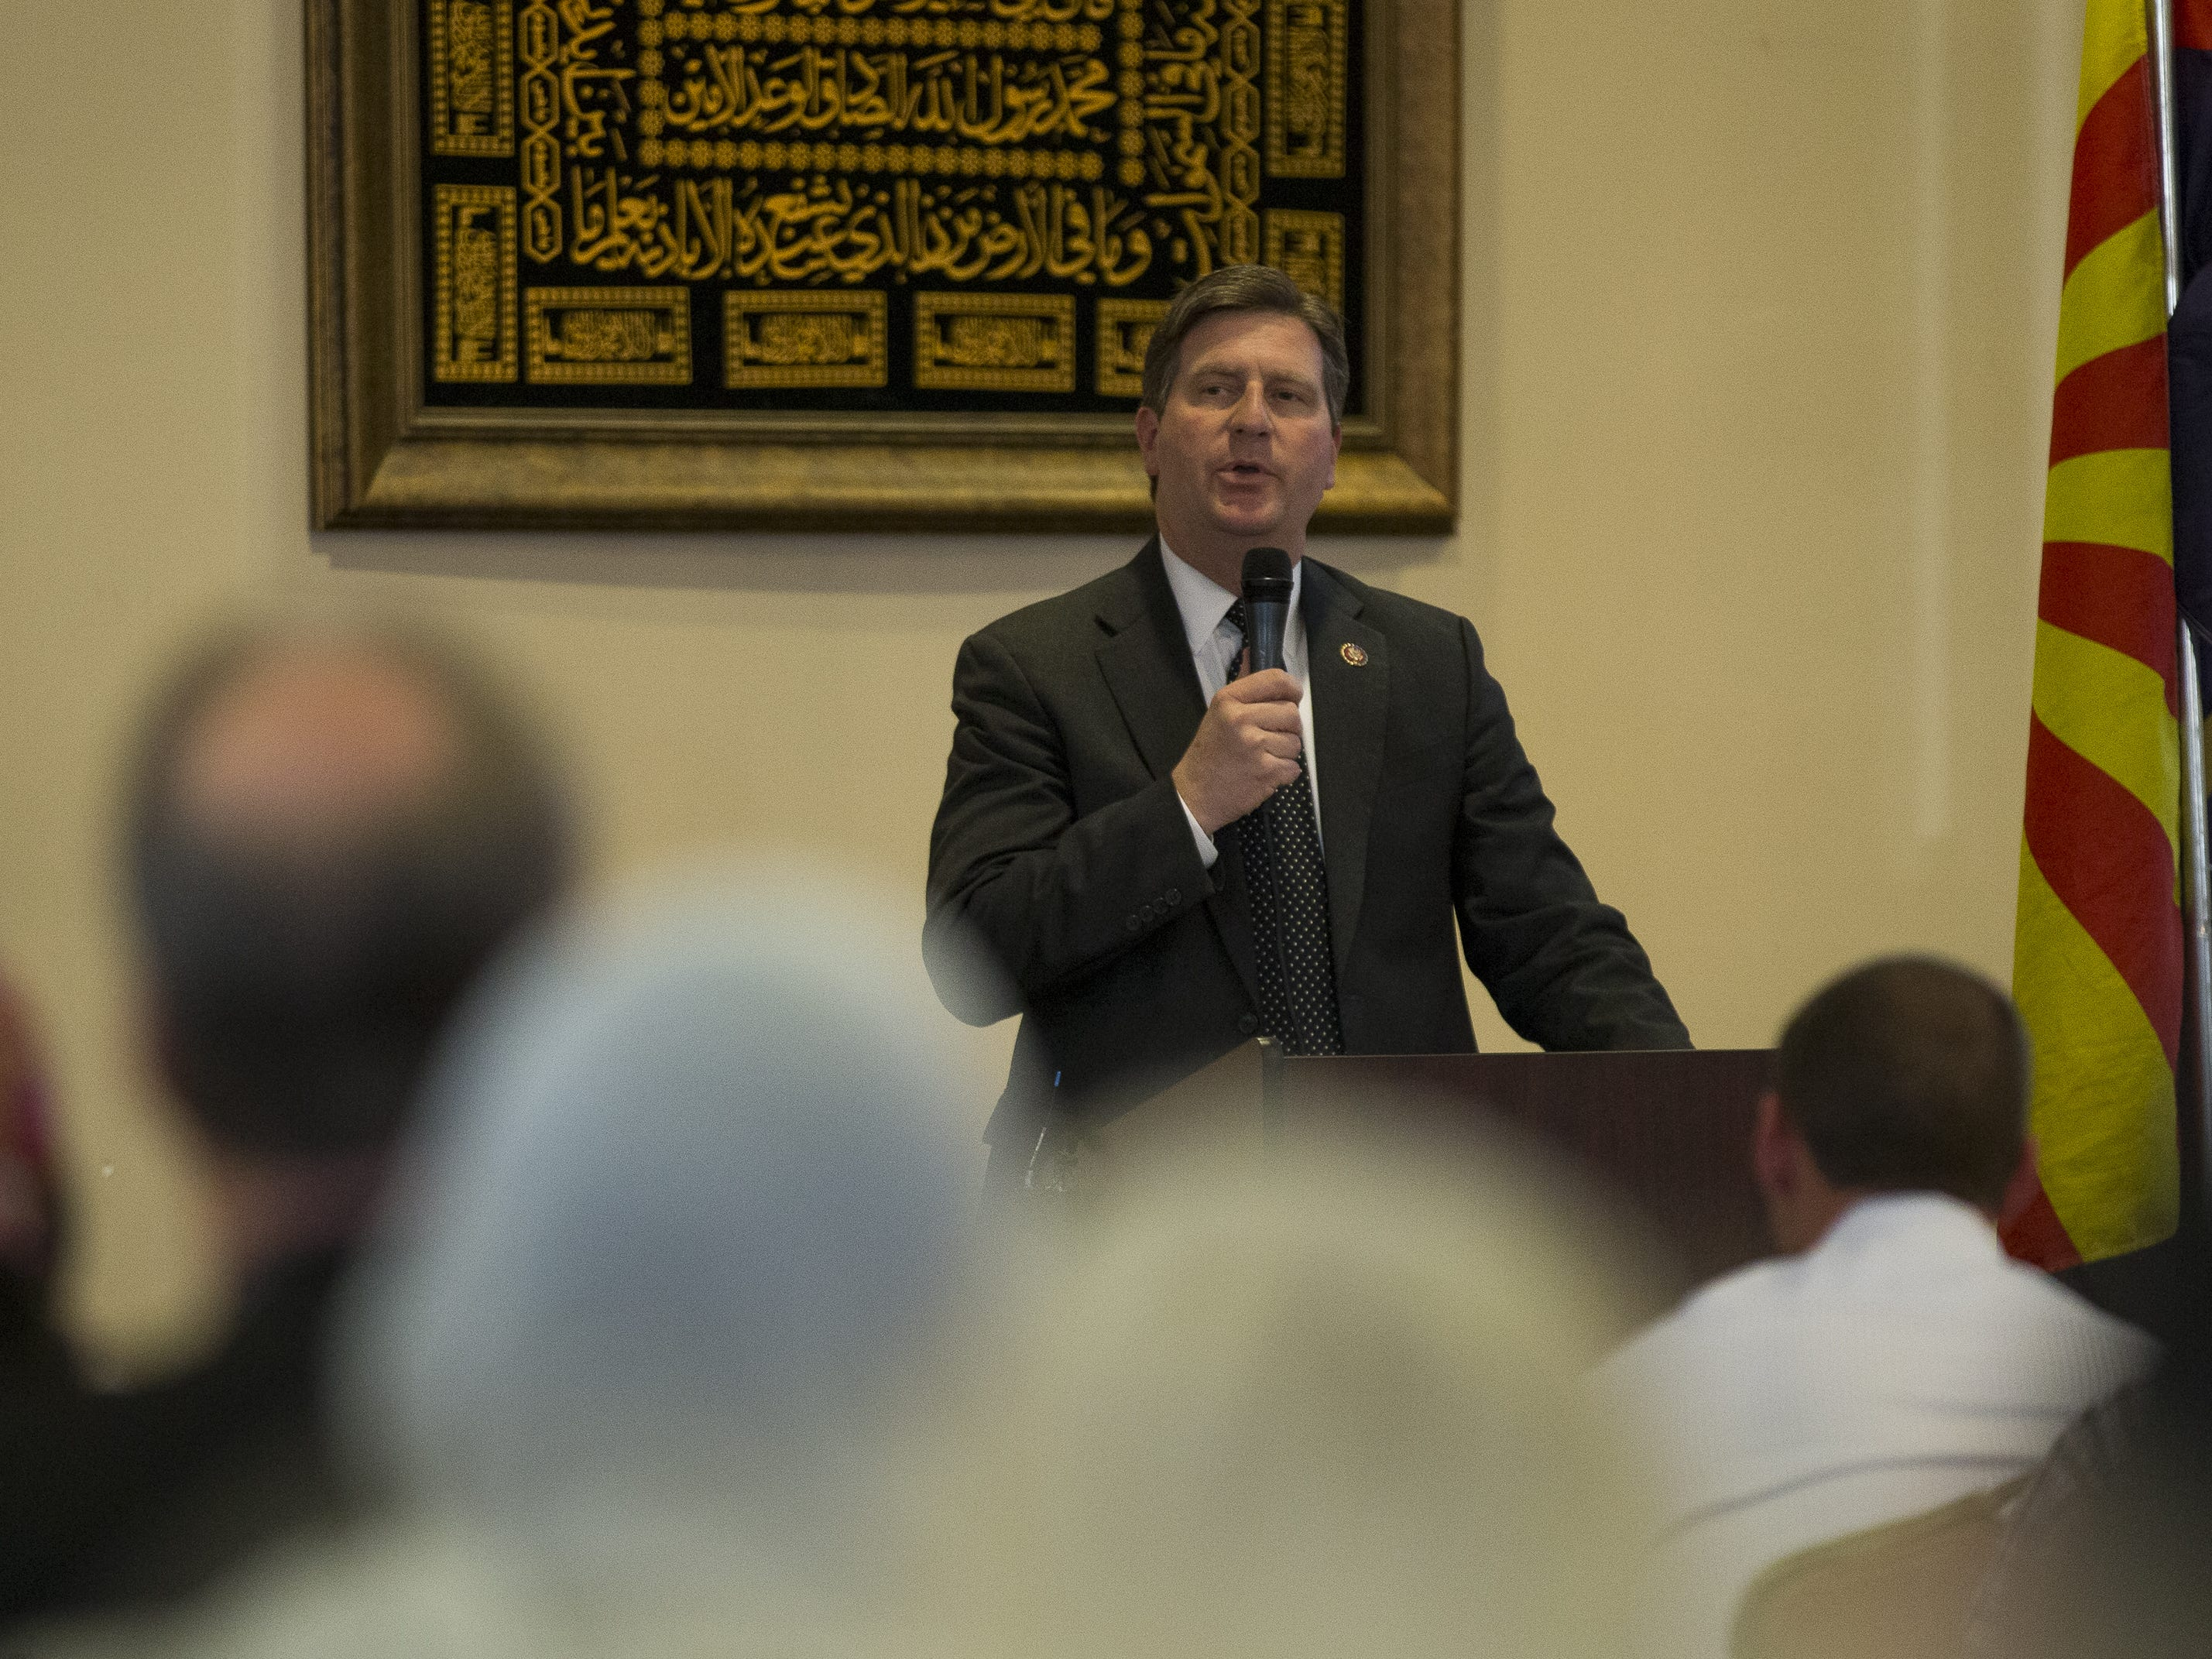 U.S. Rep. Greg Stanton speaks at a vigil held at the Islamic Center of Northeast Valley in Scottsdale, Ariz., on Sunday, March 17, 2019, in memory of the Christchurch New Zealand shooting victims.